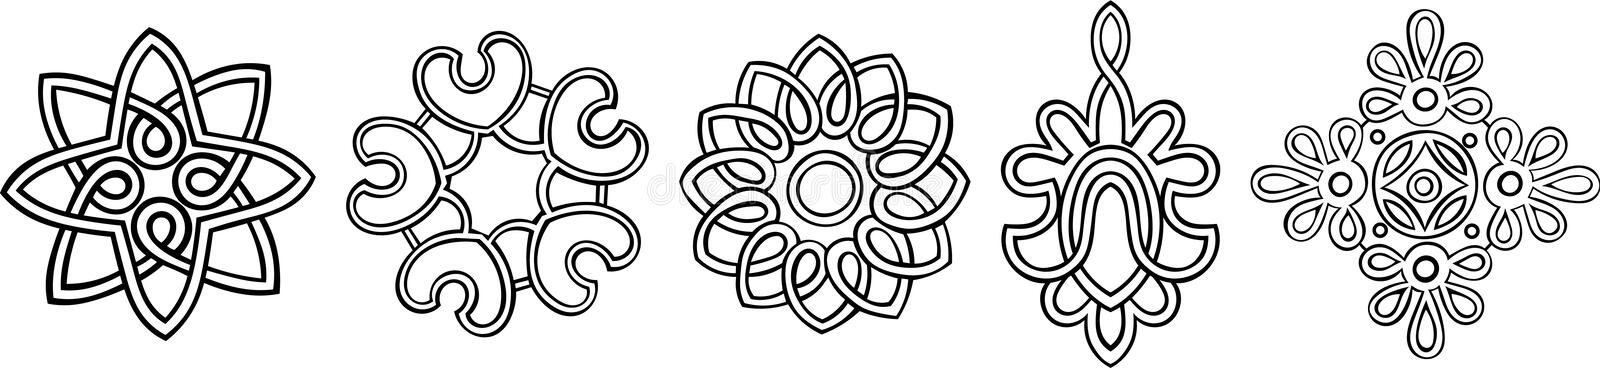 Stylised Medallions. Set of 5 hand-drawn, stylised medallion patterns to incorporate into your design vector illustration